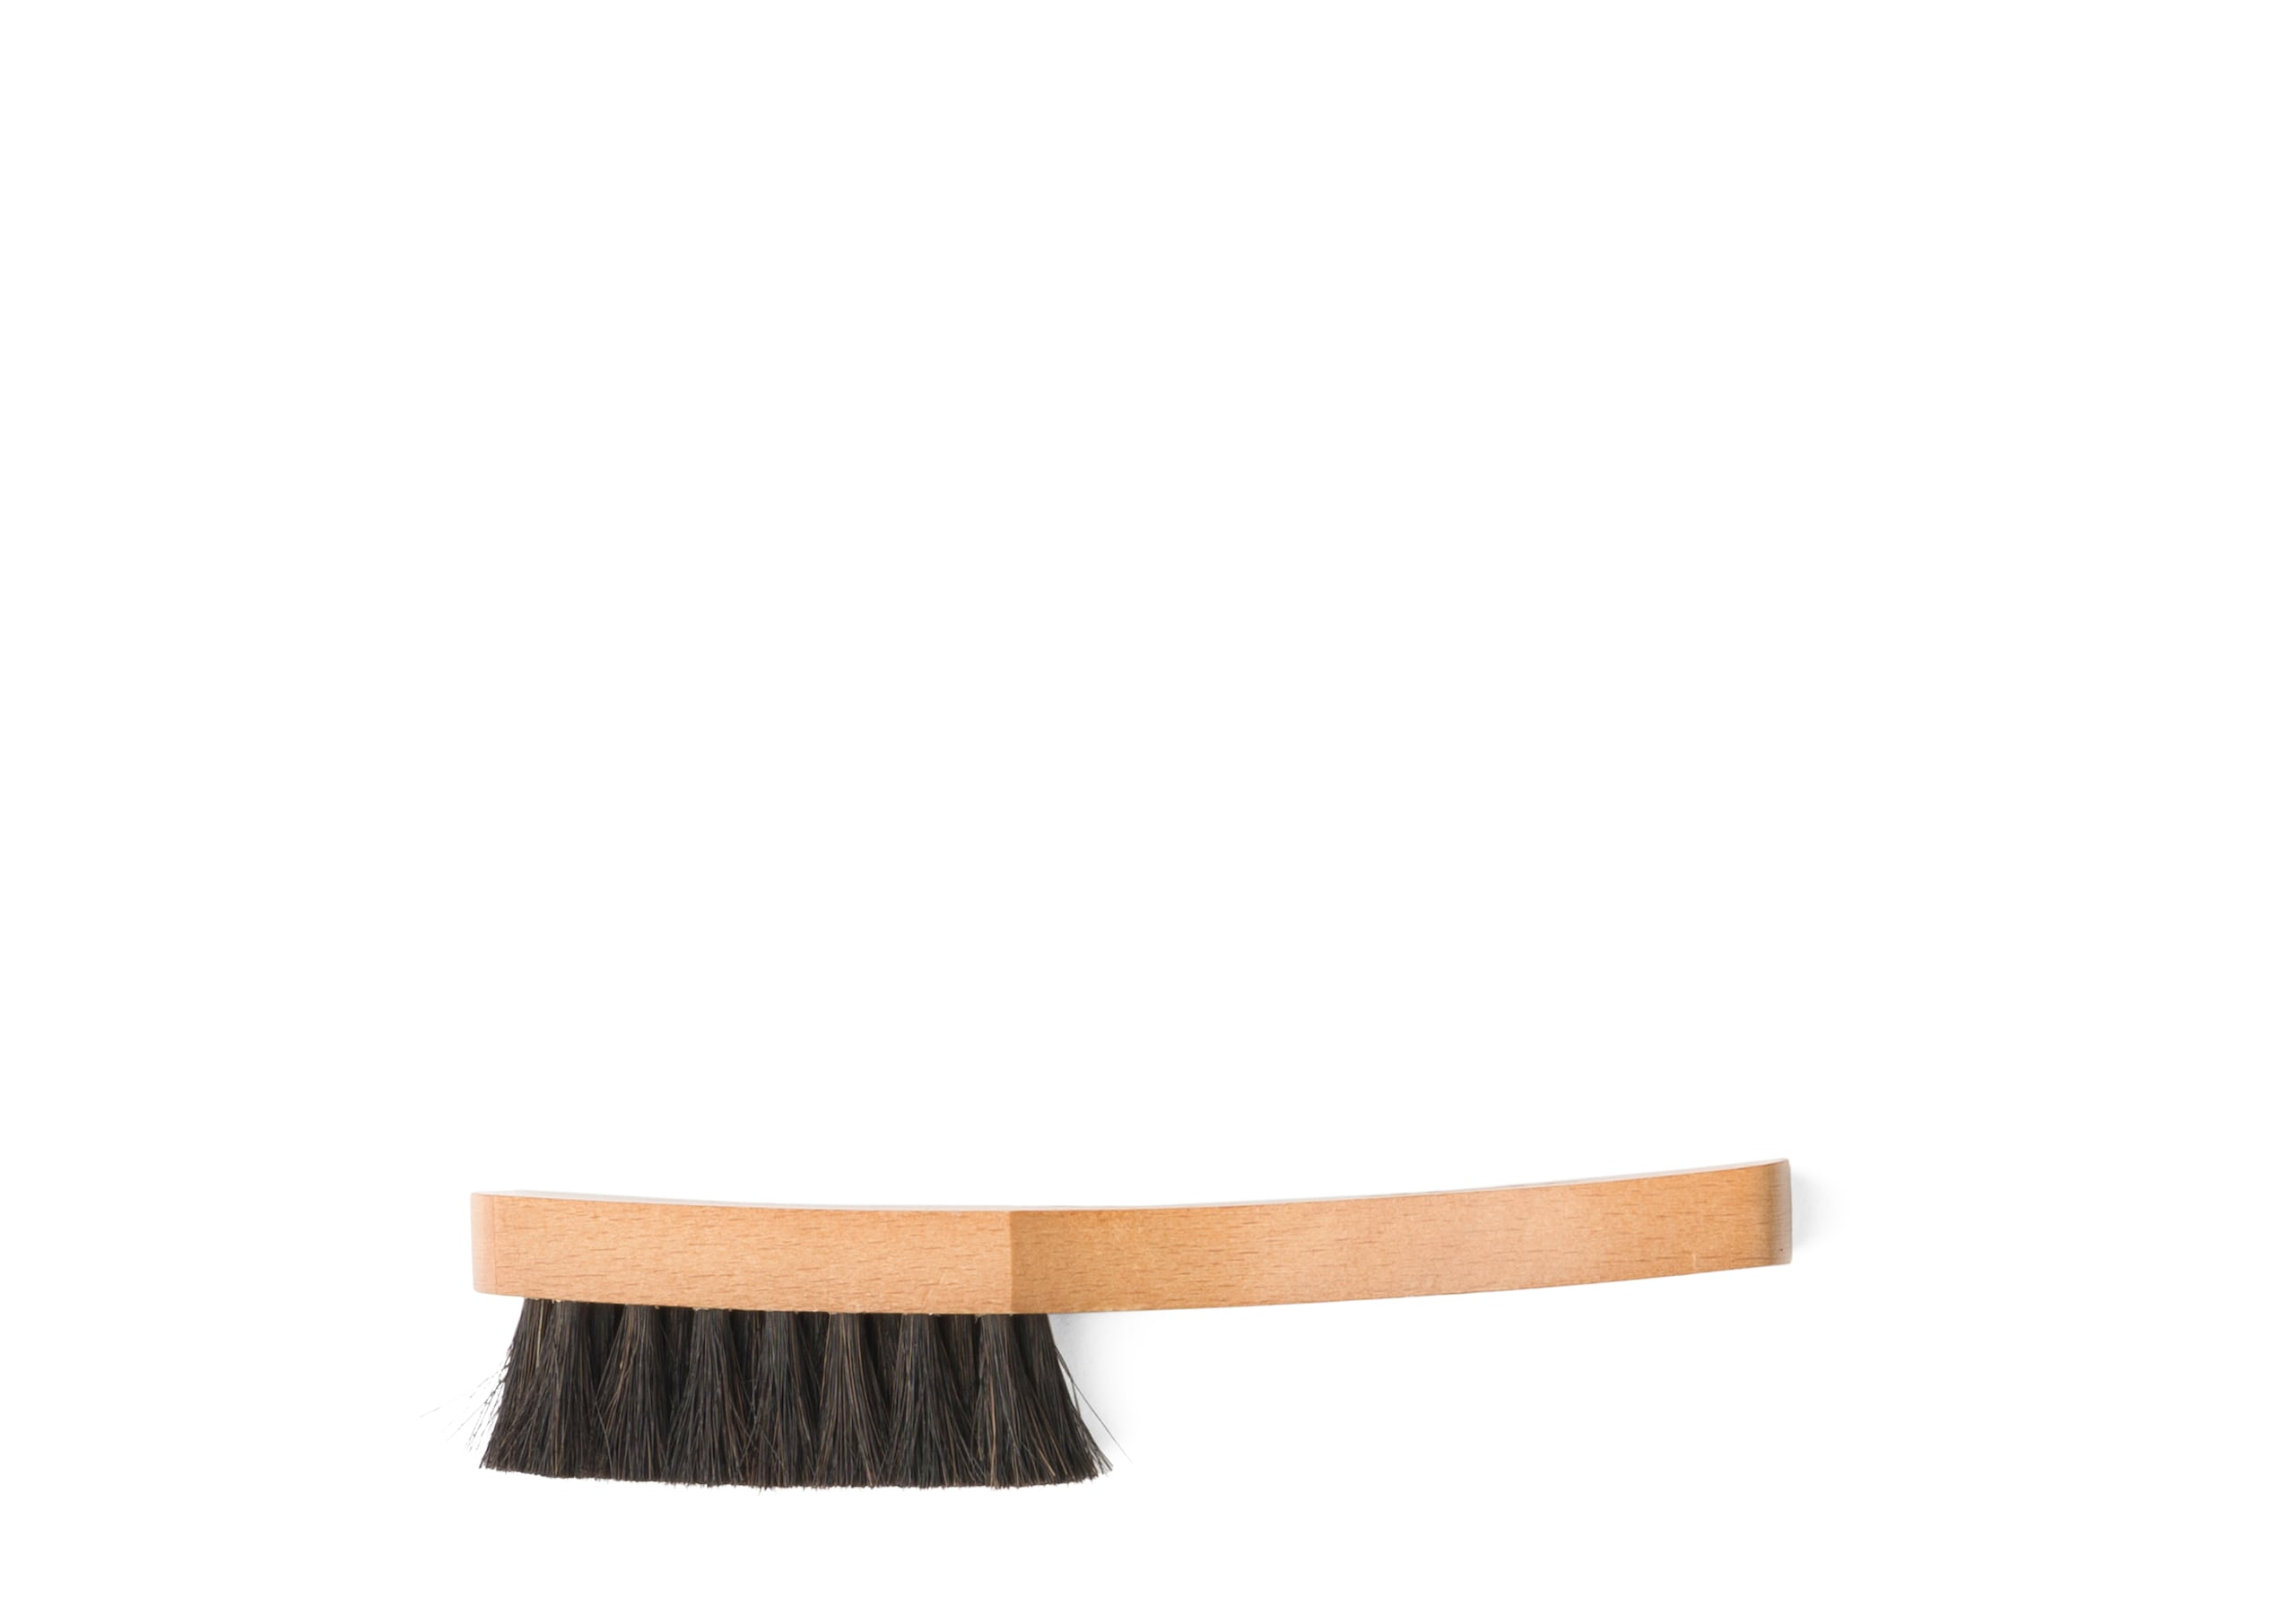 Applicator brush Church's Horsehair Applicator Brush Black